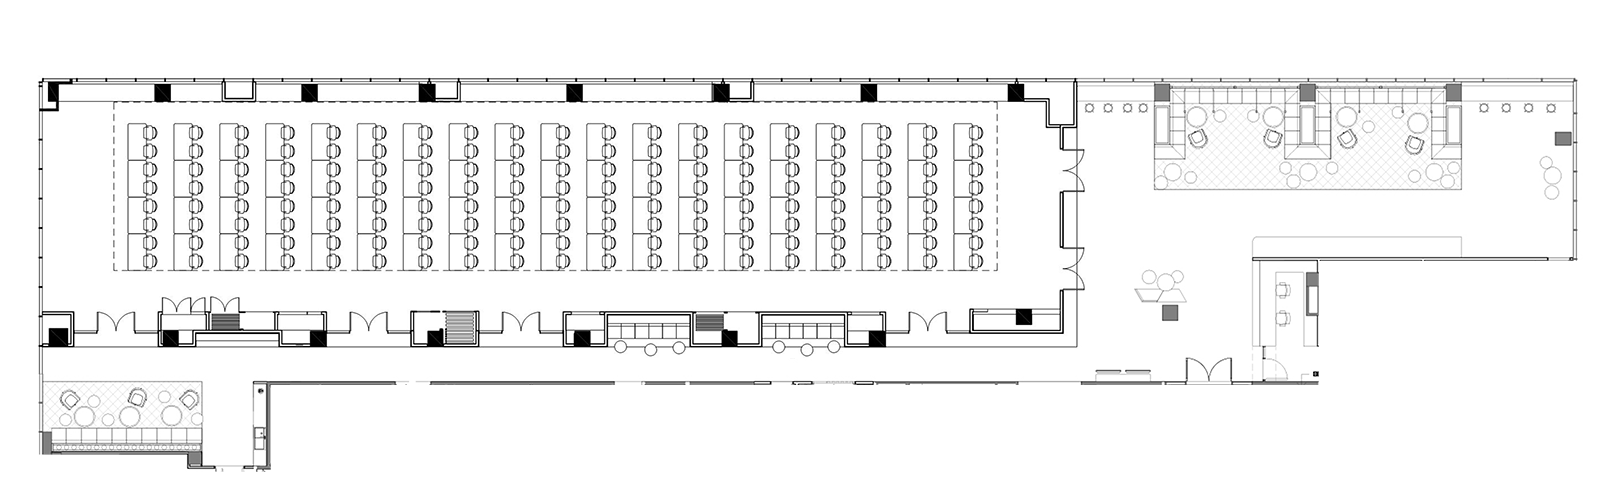 Full conference venue floor plan